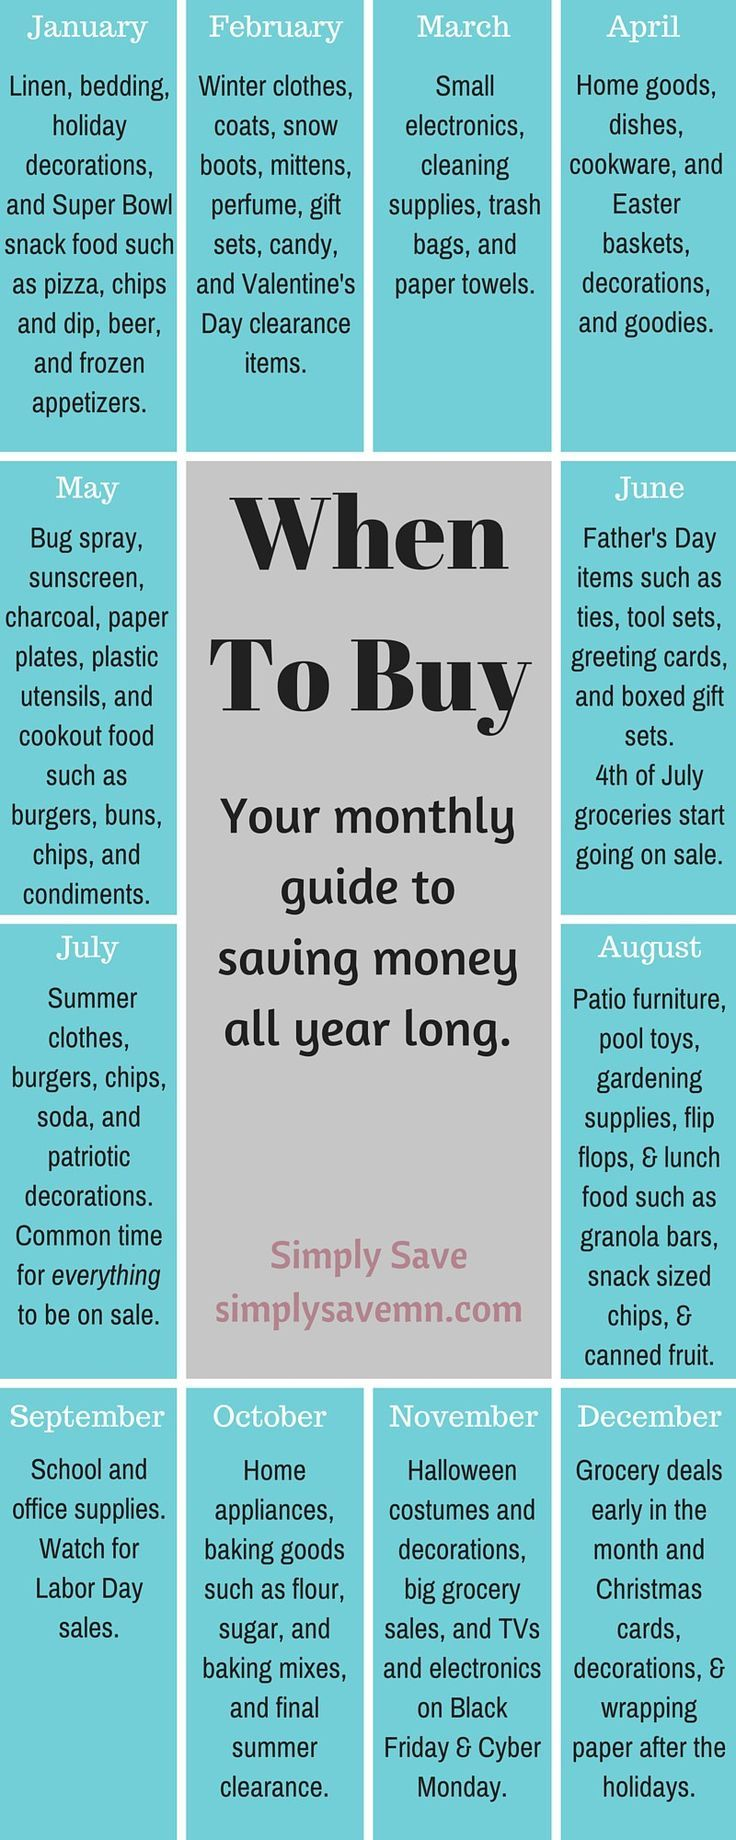 When To Buy: A Monthly Guide